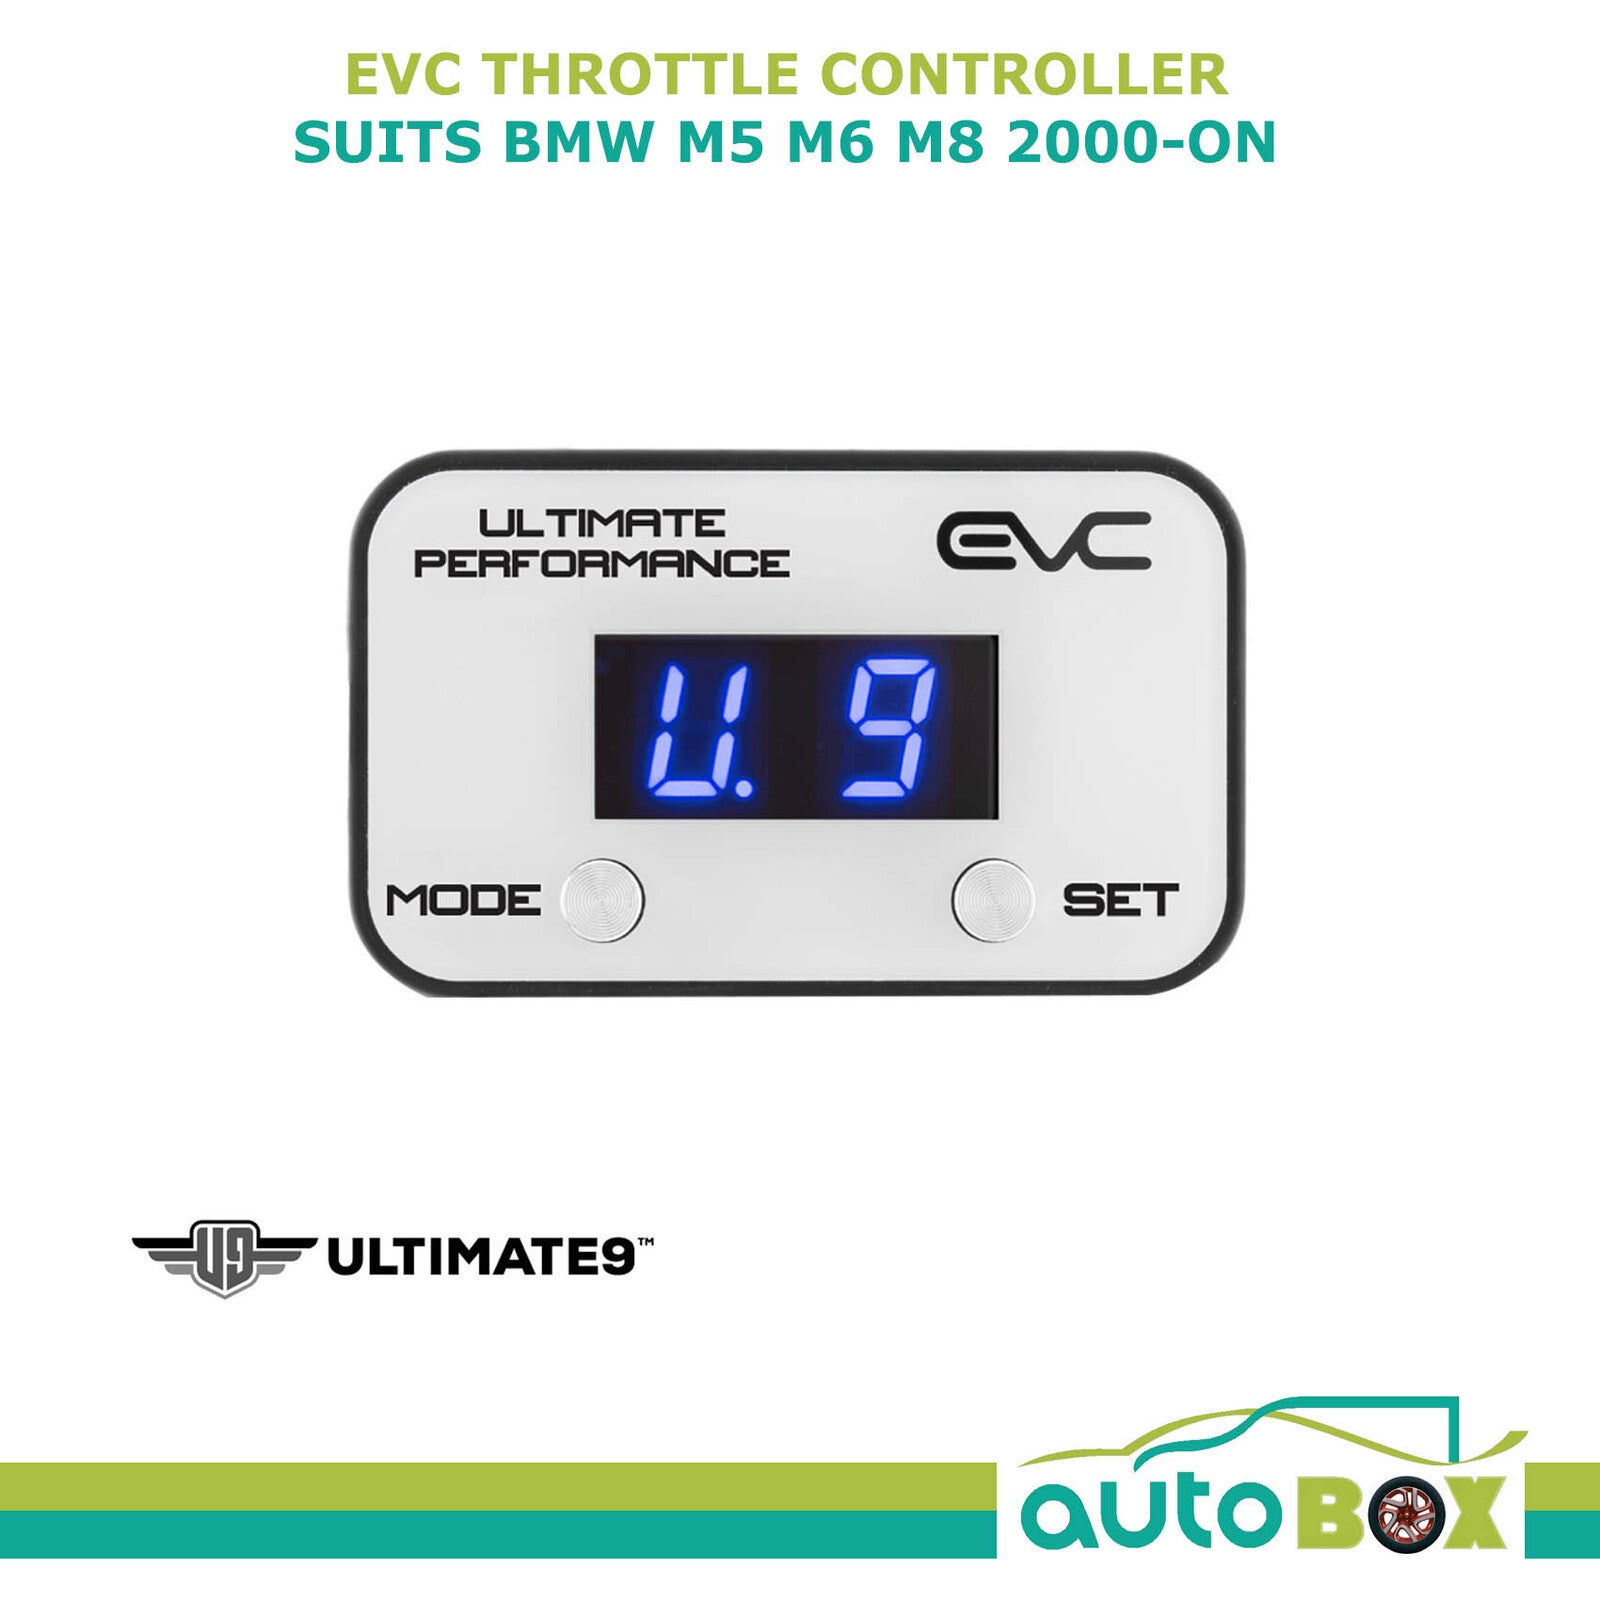 EVC iDRIVE ELECTRONIC THROTTLE CONTROLLER FOR BMW M5 M6 M8 2000 - ON WINDBOOSTER